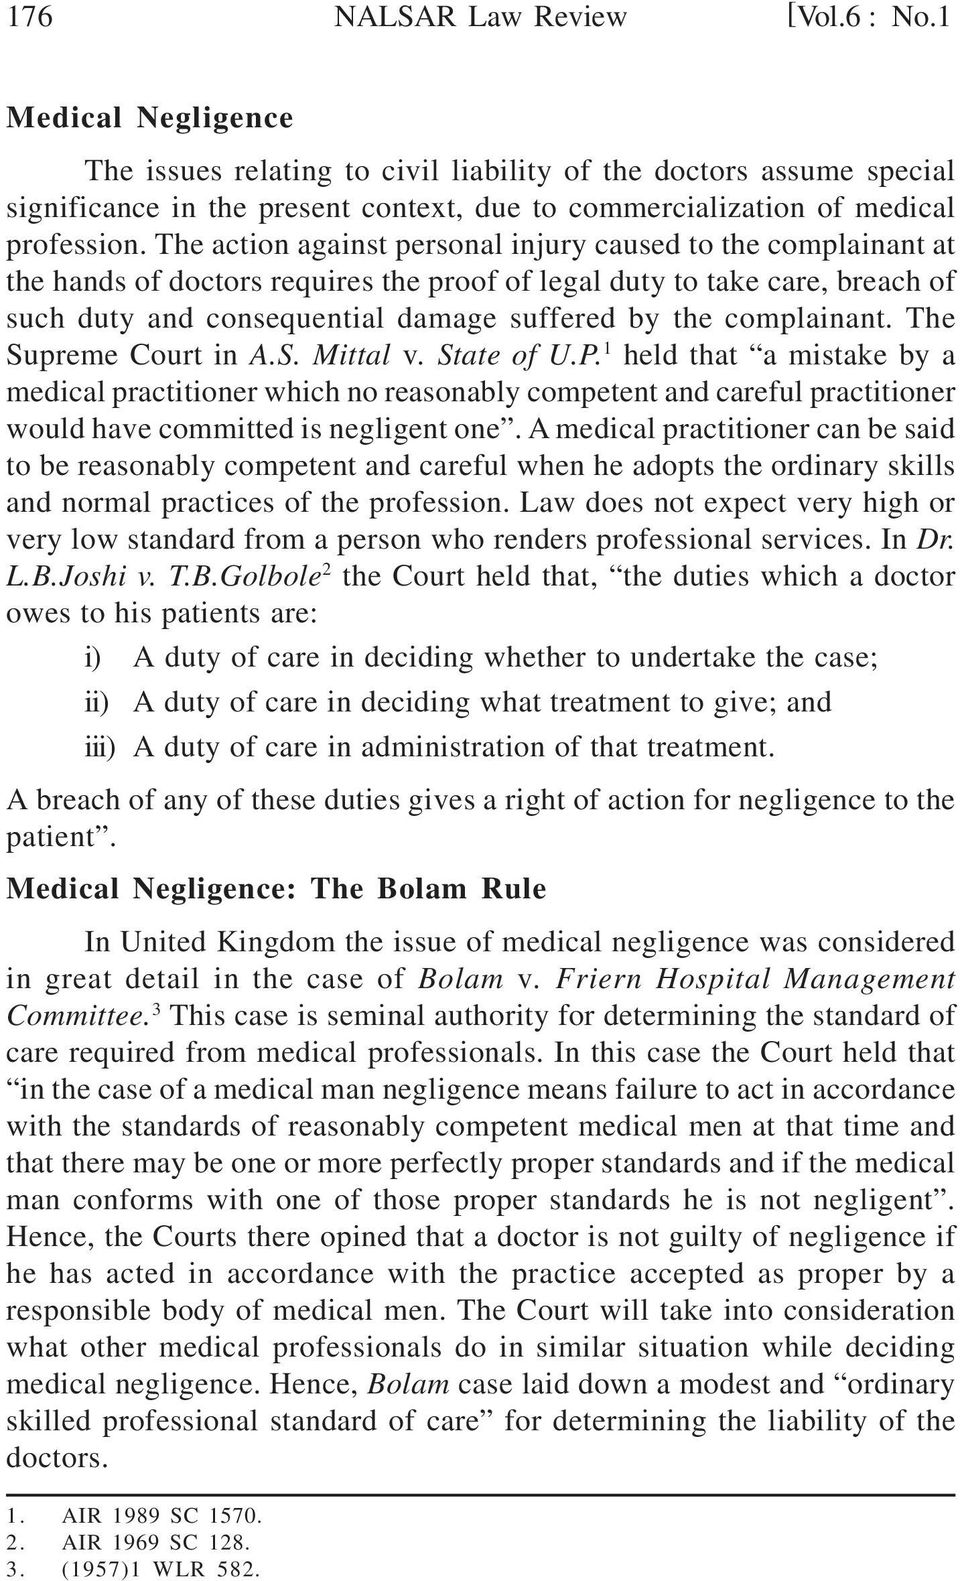 The action against personal injury caused to the complainant at the hands of doctors requires the proof of legal duty to take care, breach of such duty and consequential damage suffered by the